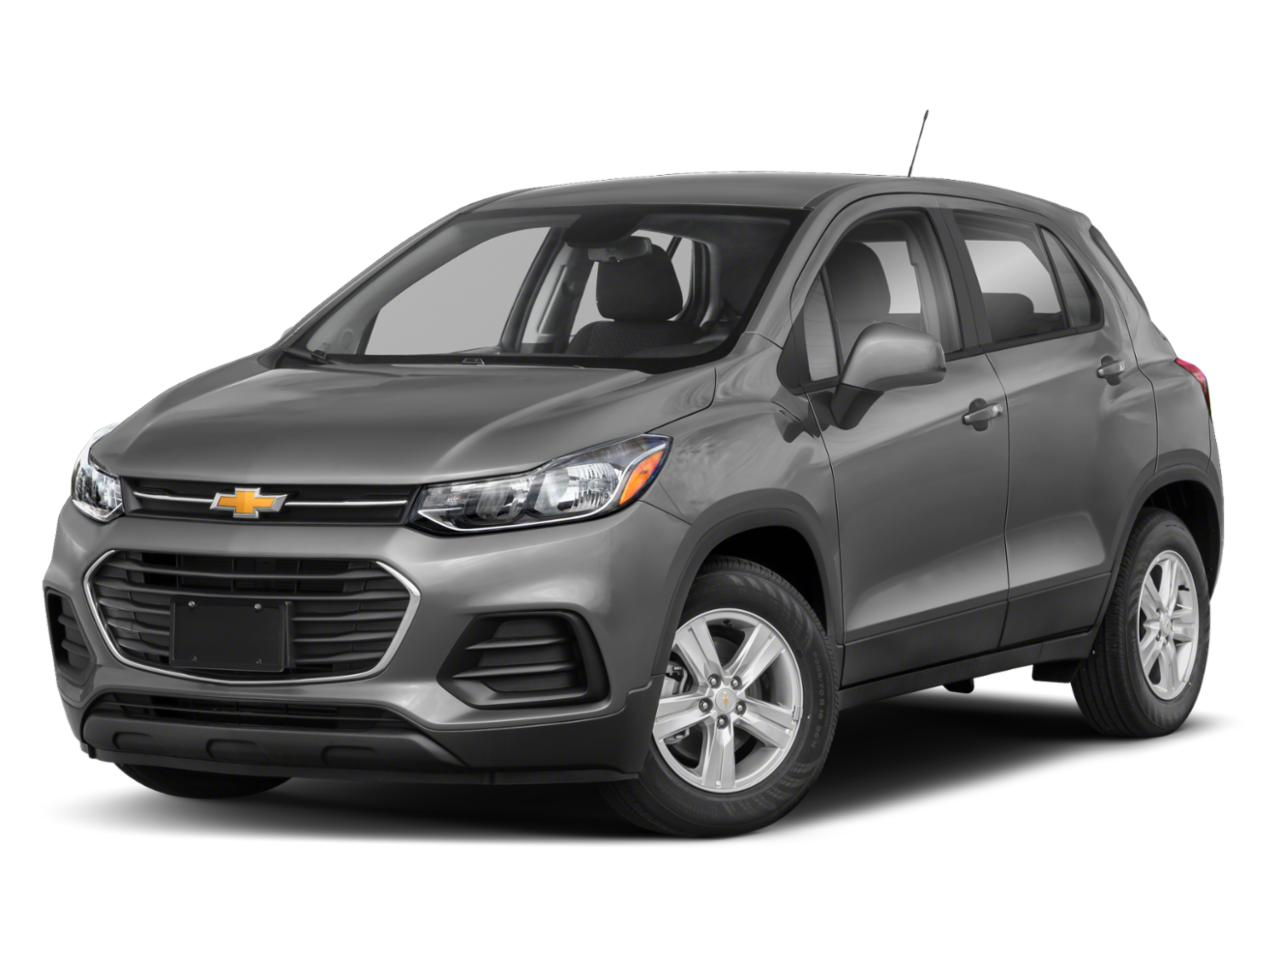 2021 Chevrolet Trax Vehicle Photo in San Leandro, CA 94577